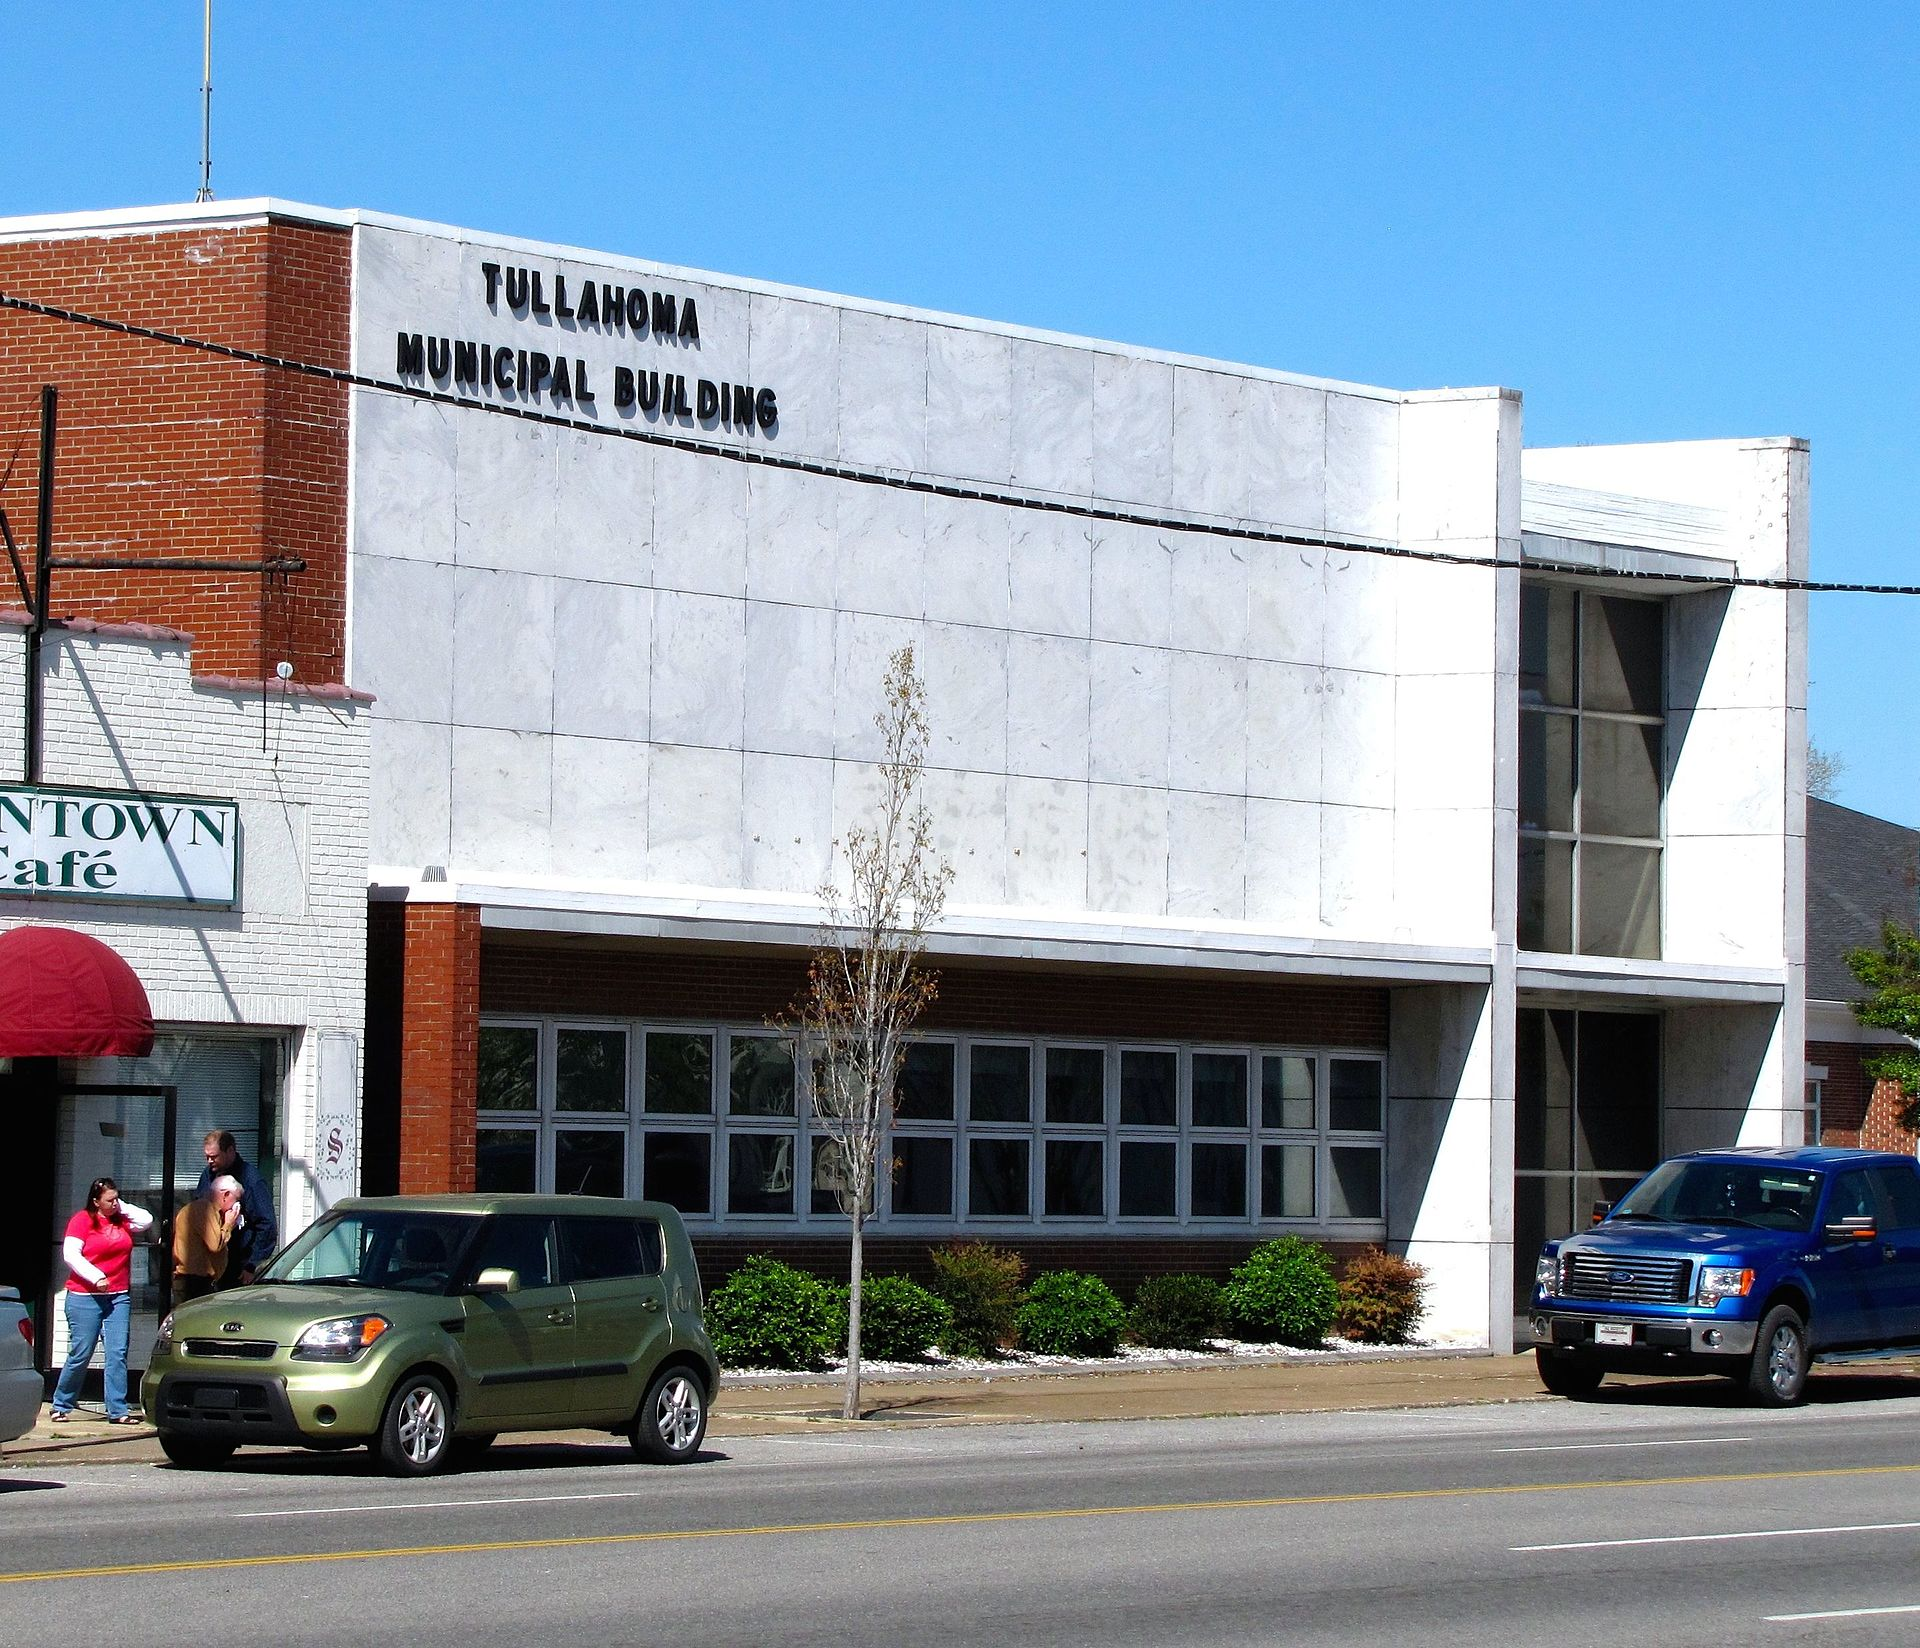 Tullahoma-Municipal-Building-tn1